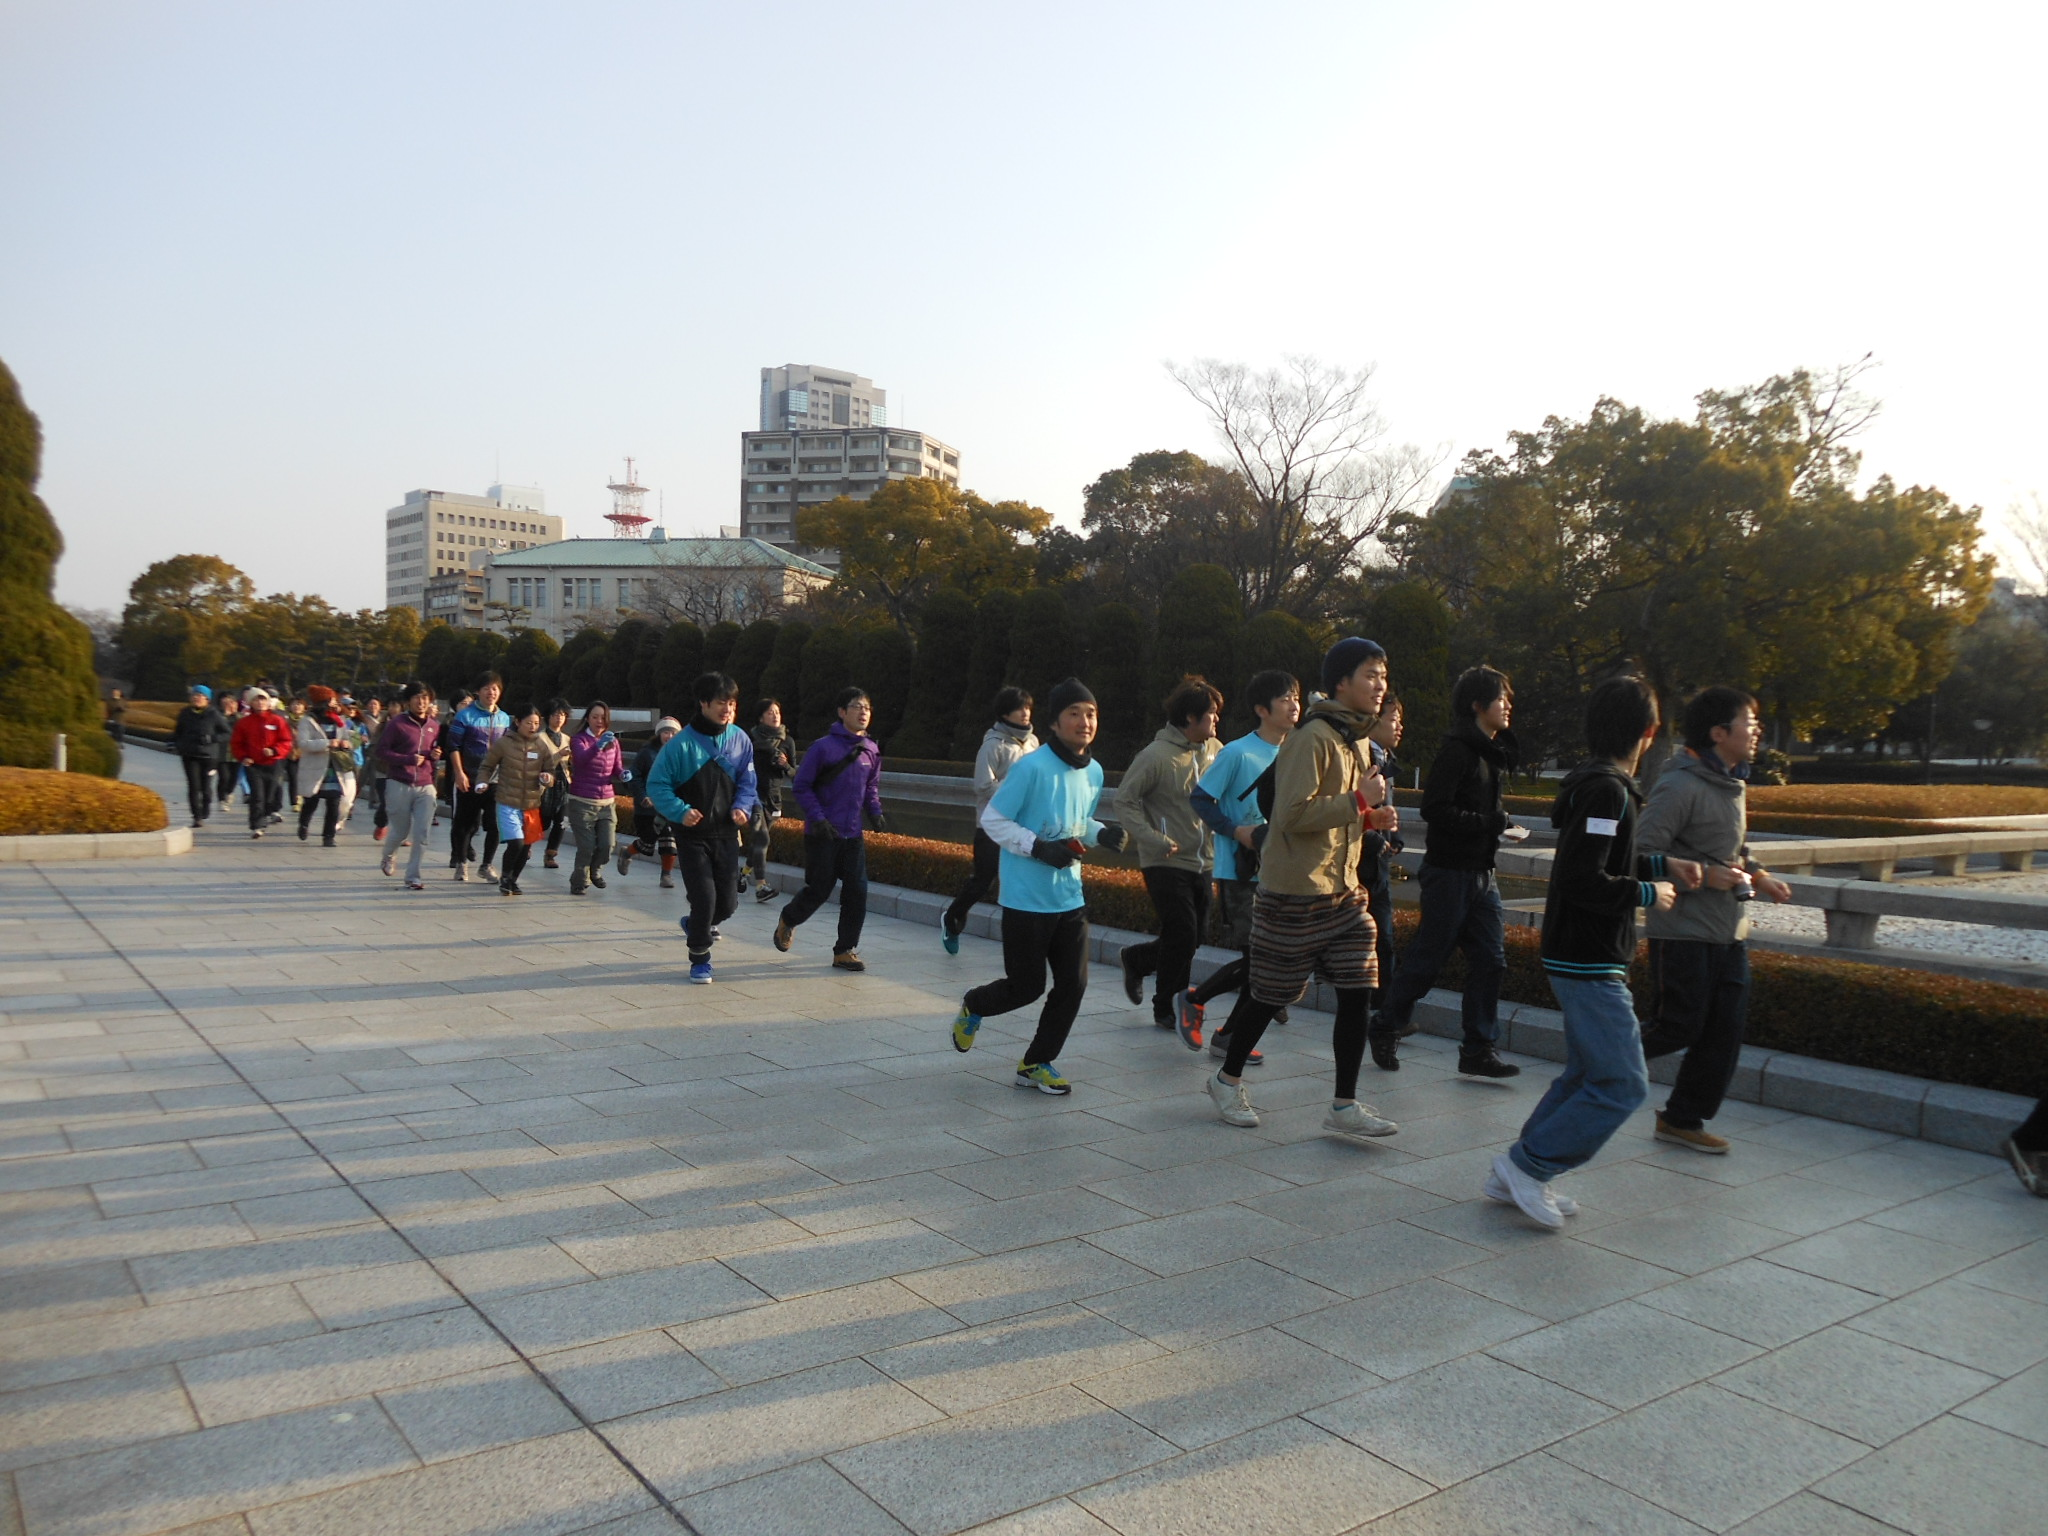 Culture run: A city observation jogging event (Feb. 16) by Atelier Bow Wow's Momoyo Kaijima and Yoshiharu Tsukamoto proves popular with locals. | PHOTO COURTESY OF HIROSHIMA MUSEUM OF CONTEMPORARY ART